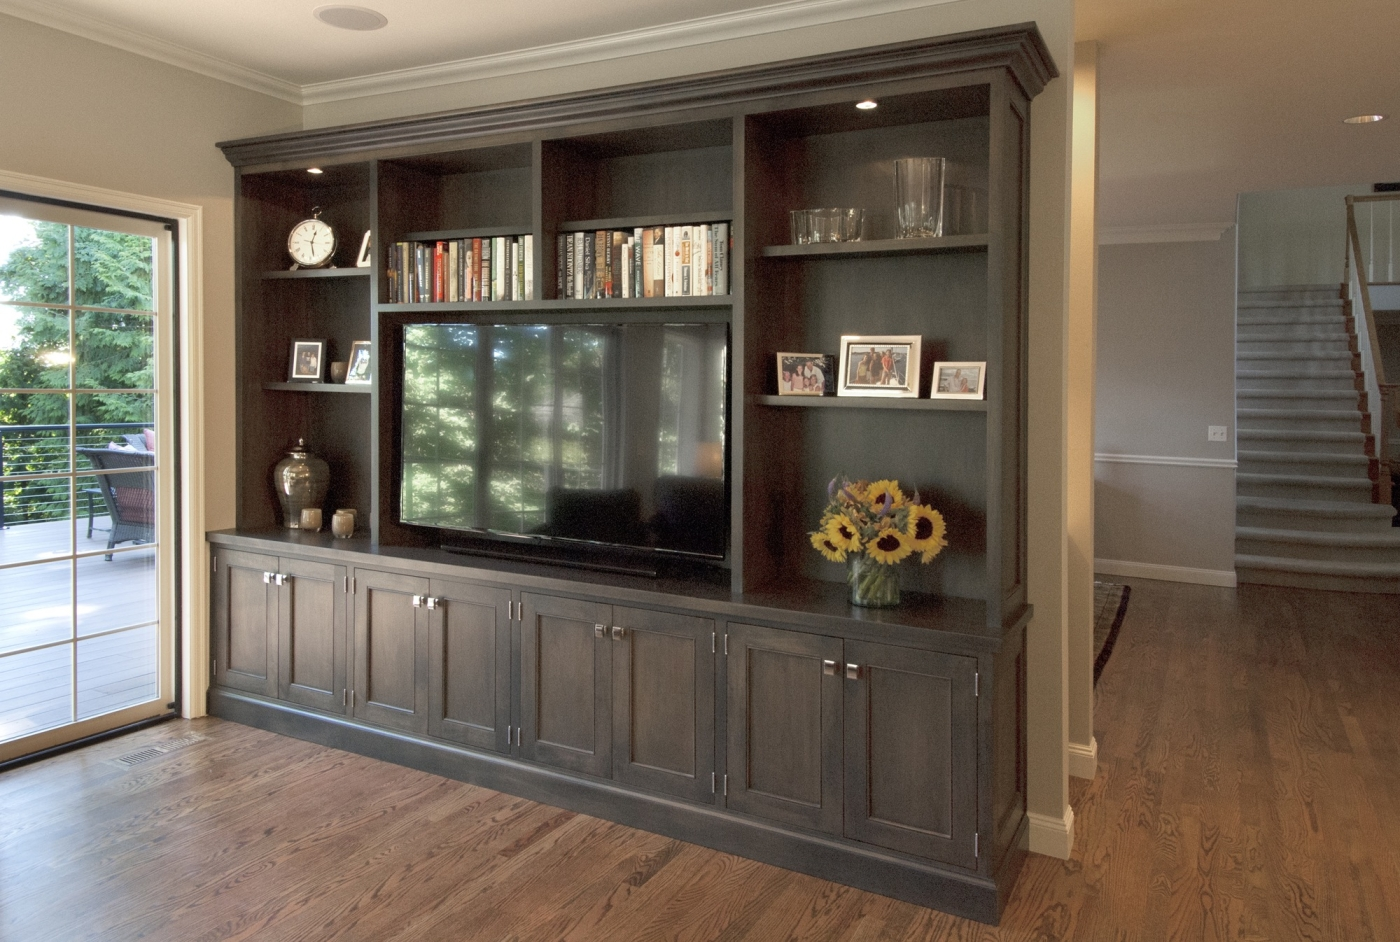 Bookshelf and Entertainment Center